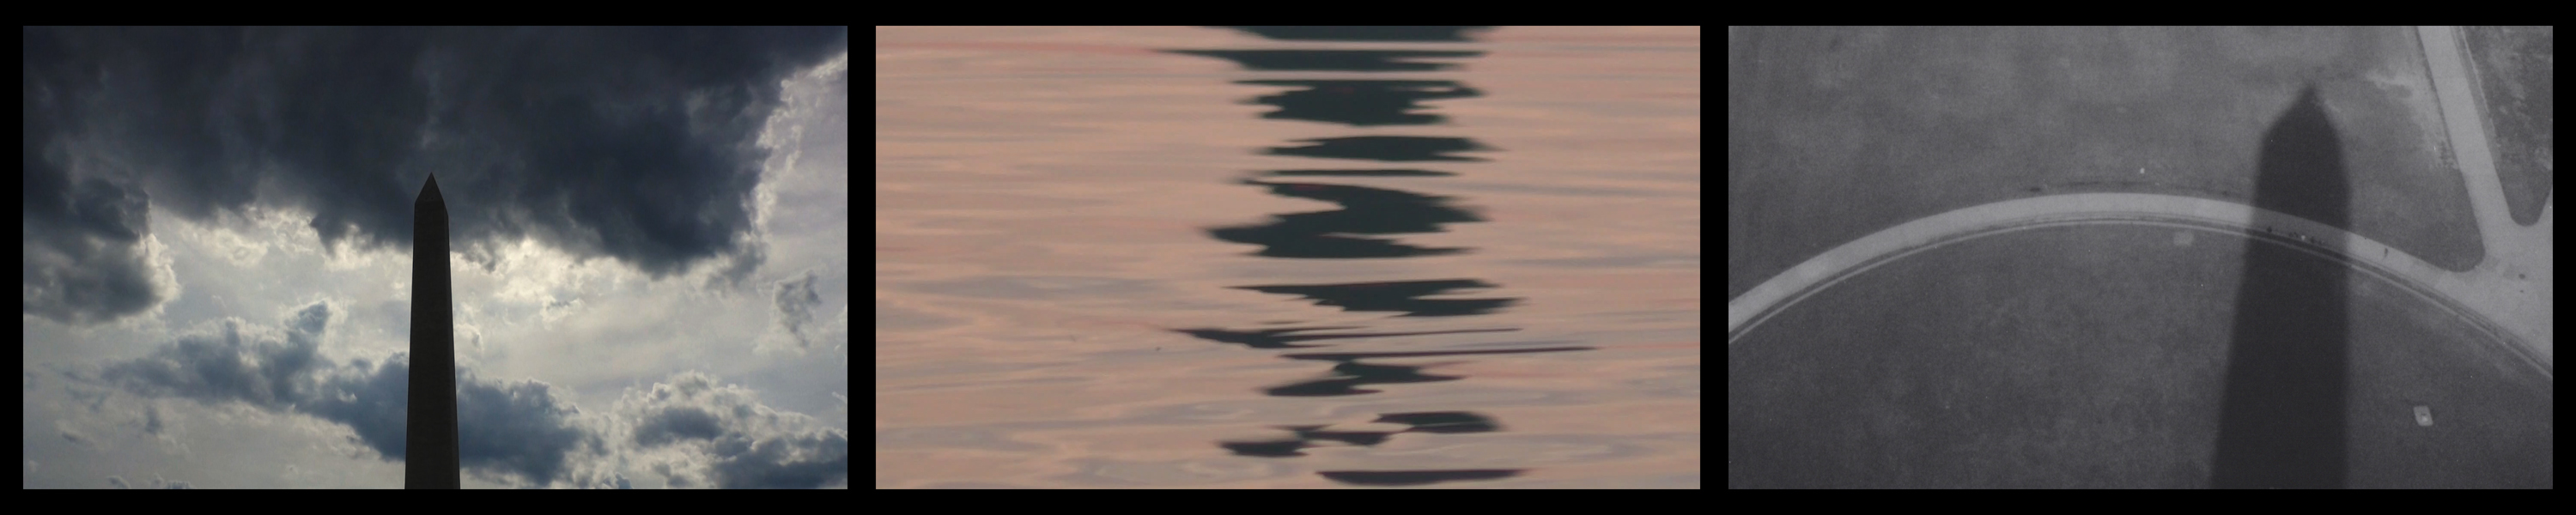 Jana Harper, Horizon Broader Is, The The You Fly, (video still), 3-channel video, 2016